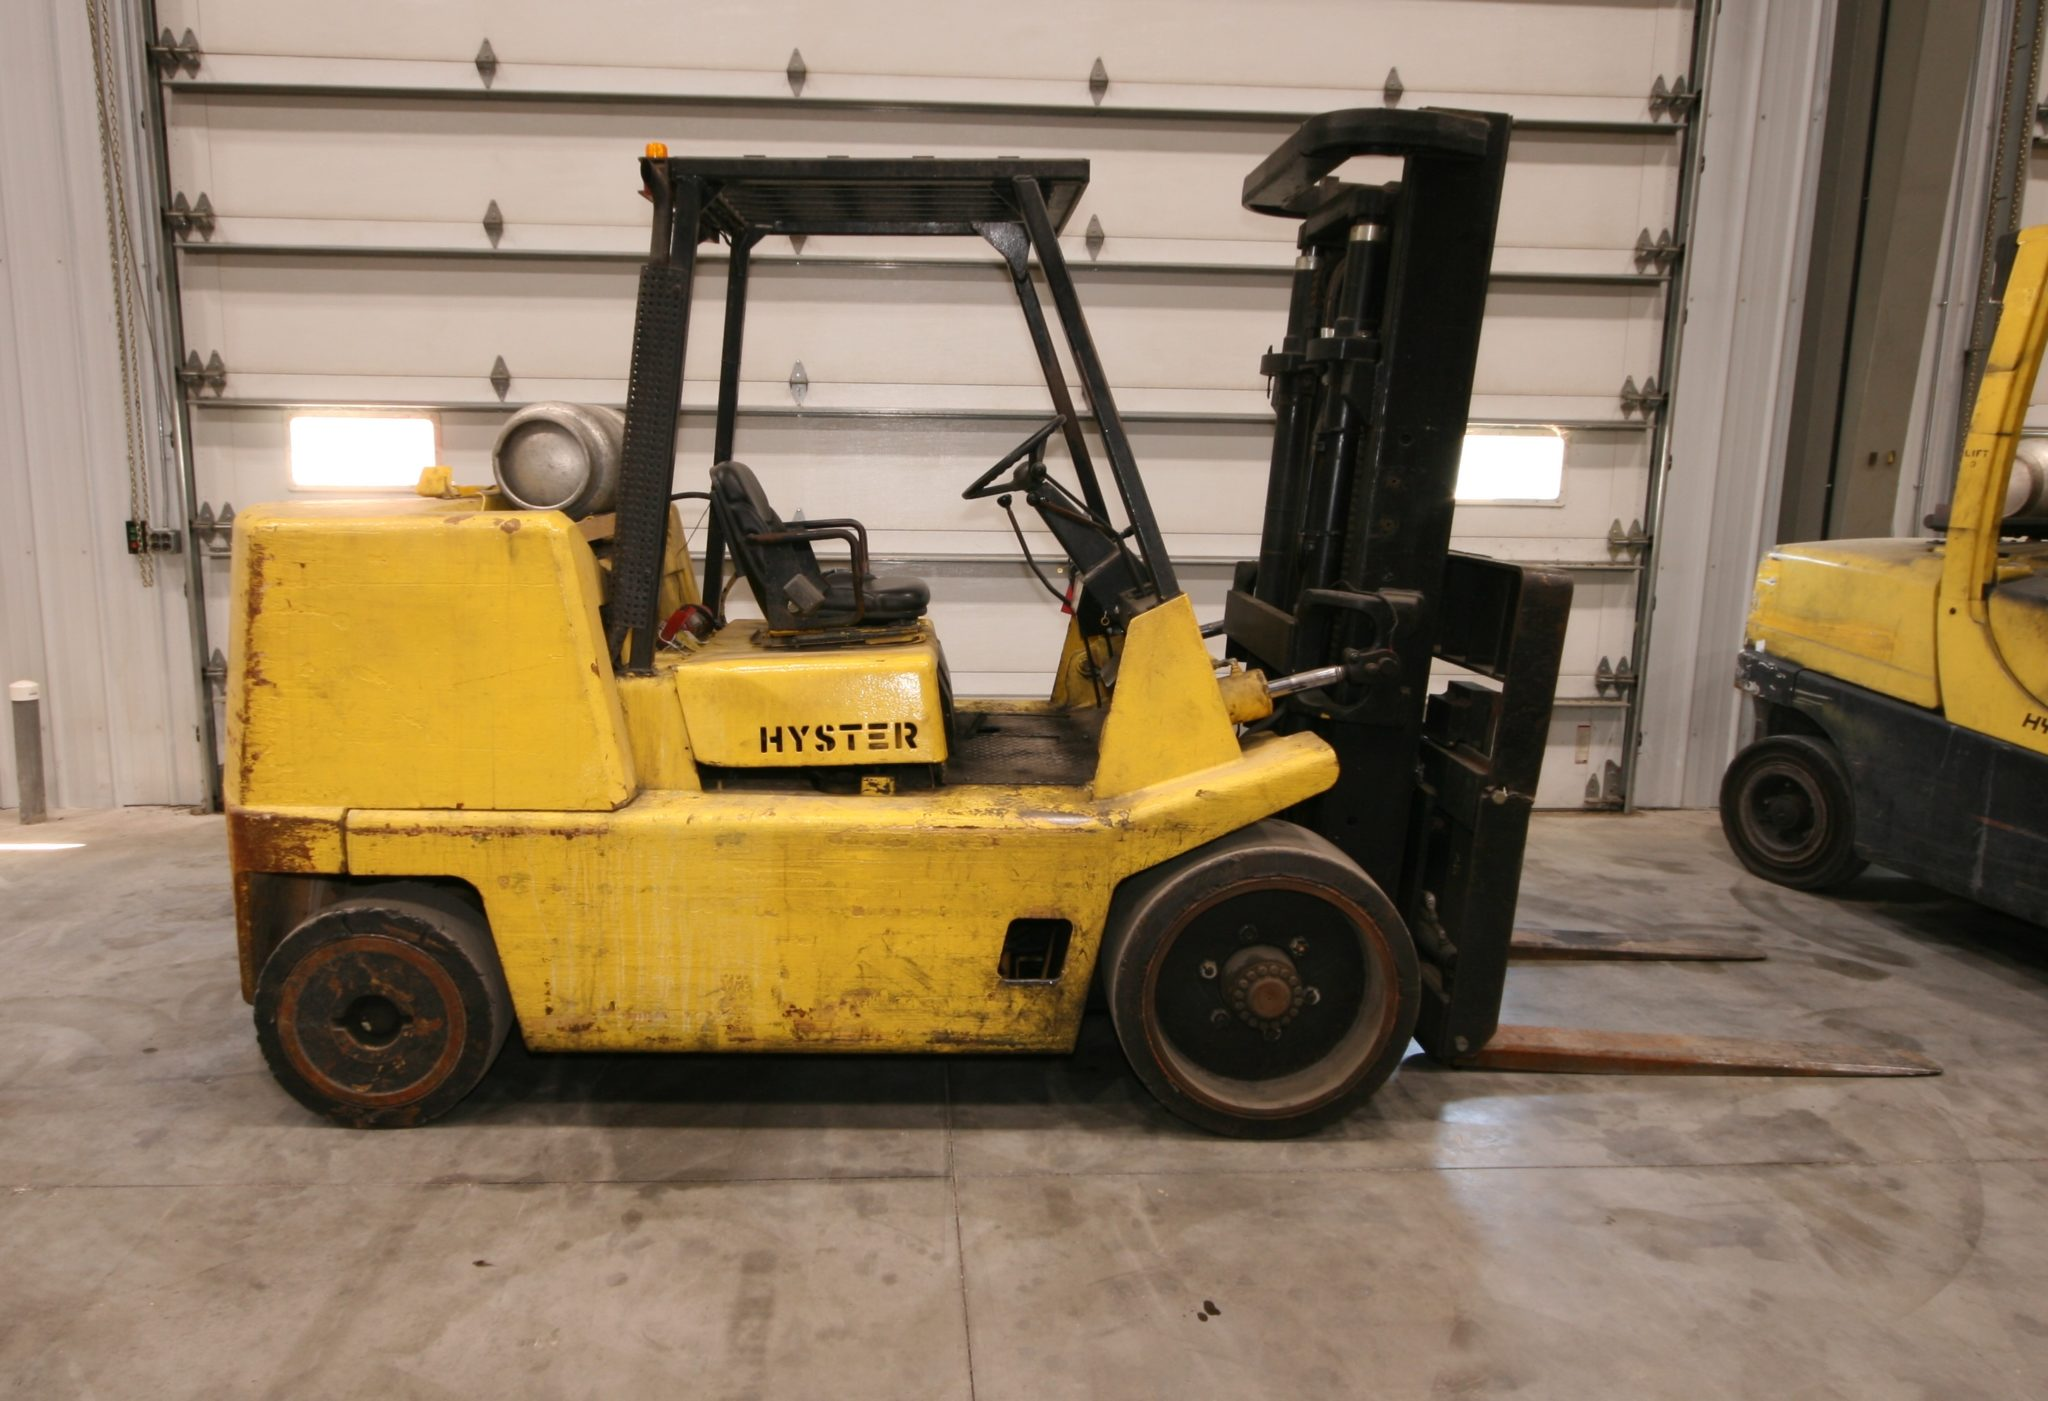 Hyster 15500 Service Manual Forklift Wiring Diagram E60 2004 H100xm Pneumatic Diesel Array 15000 Lbs Capacity Model S155xl Rh Vanderzielmachinery Com